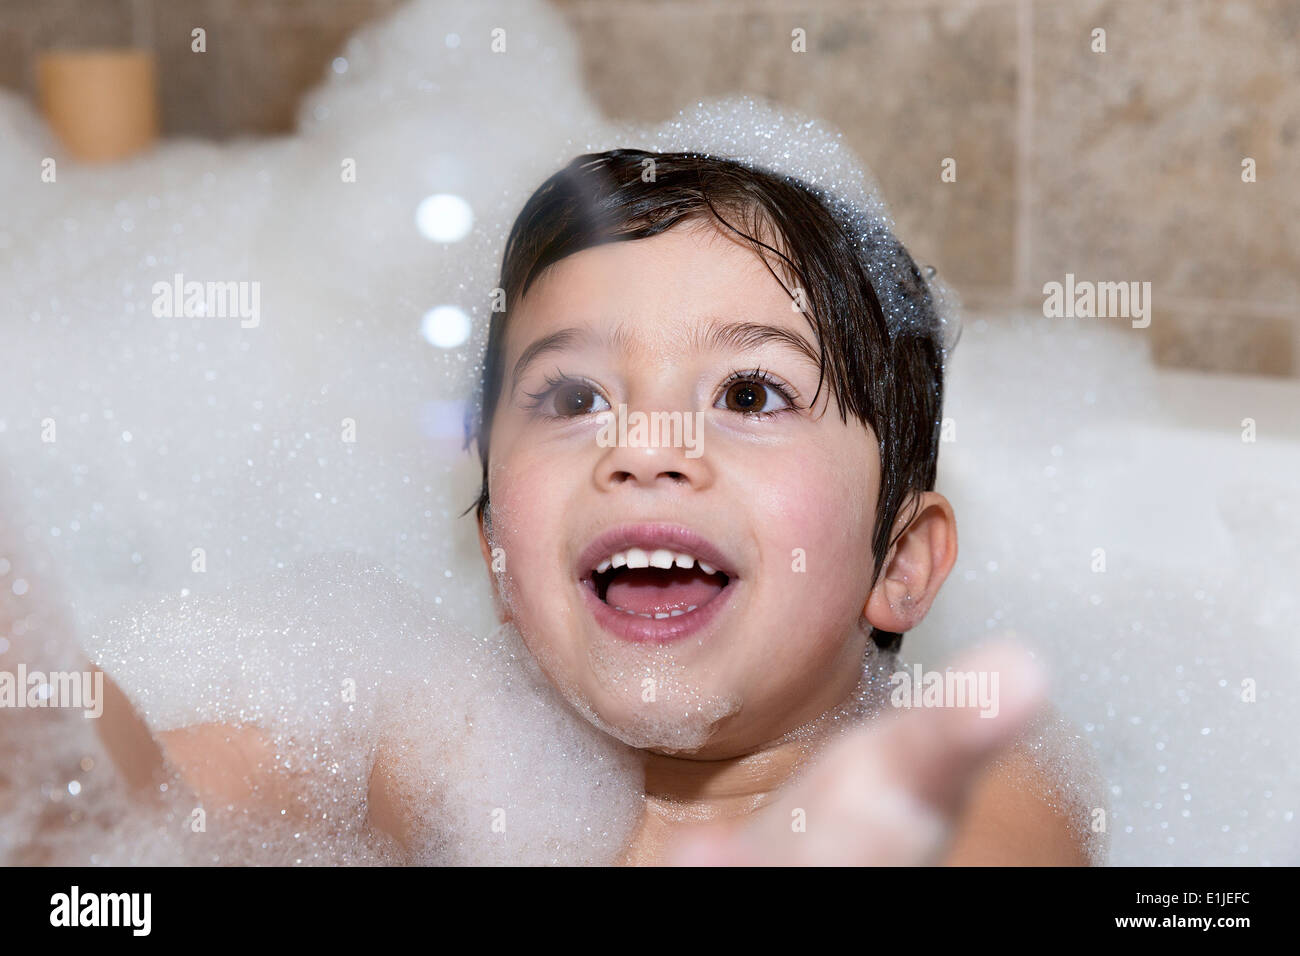 Young boy trying to catch bubble in bubble bath - Stock Image